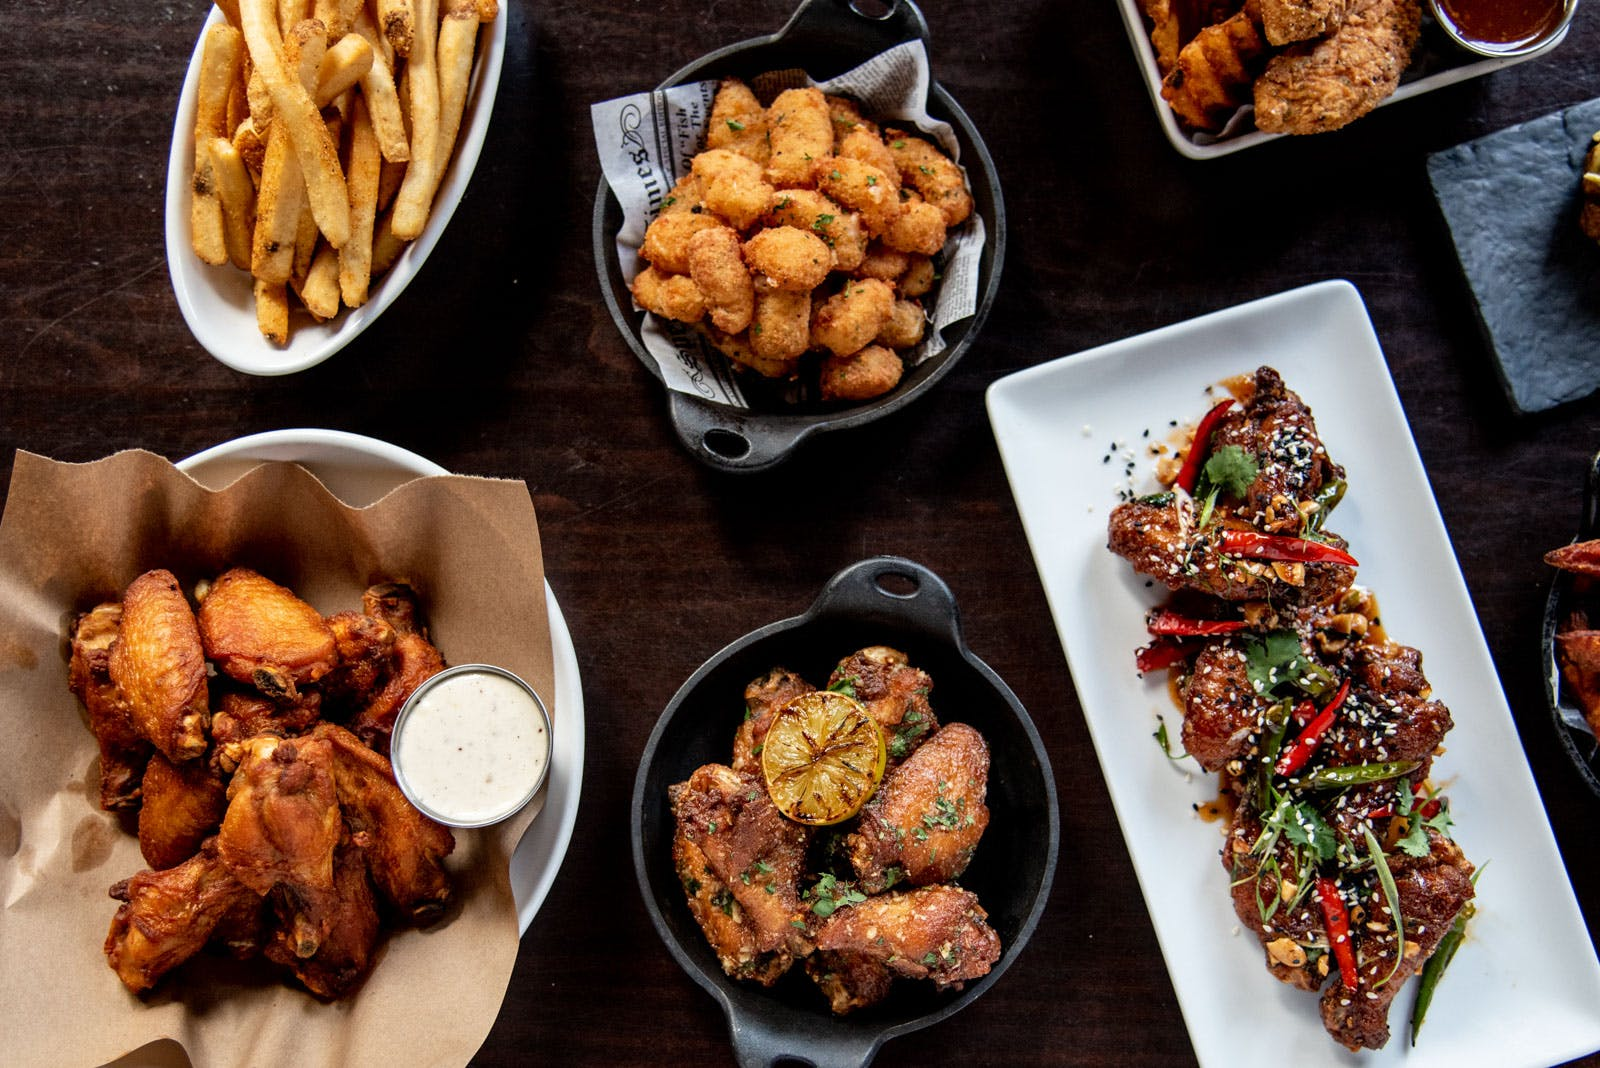 Midcoast Wings - Downtown Madison in Madison - Highlight